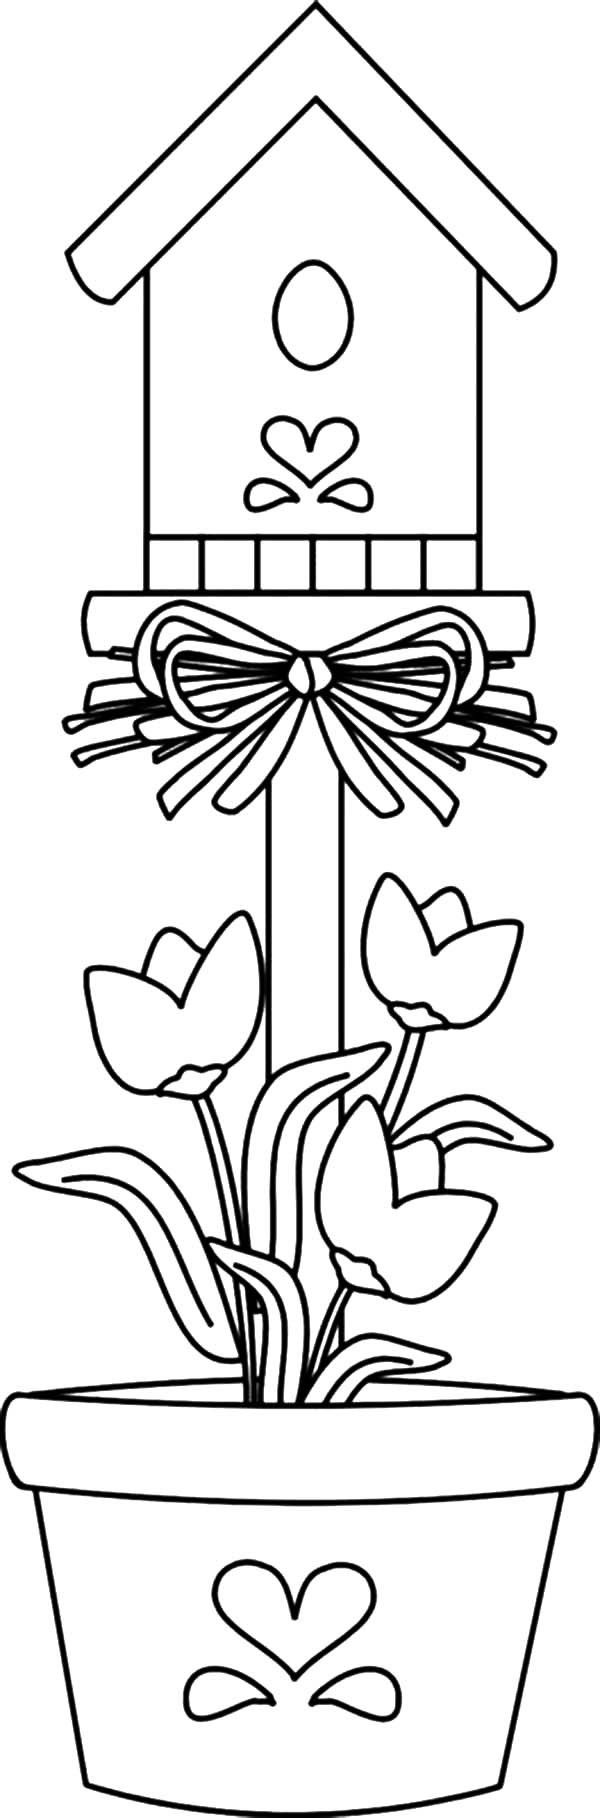 Bird House, : Bird House Planted in Pot Coloring Pages | Screen ...